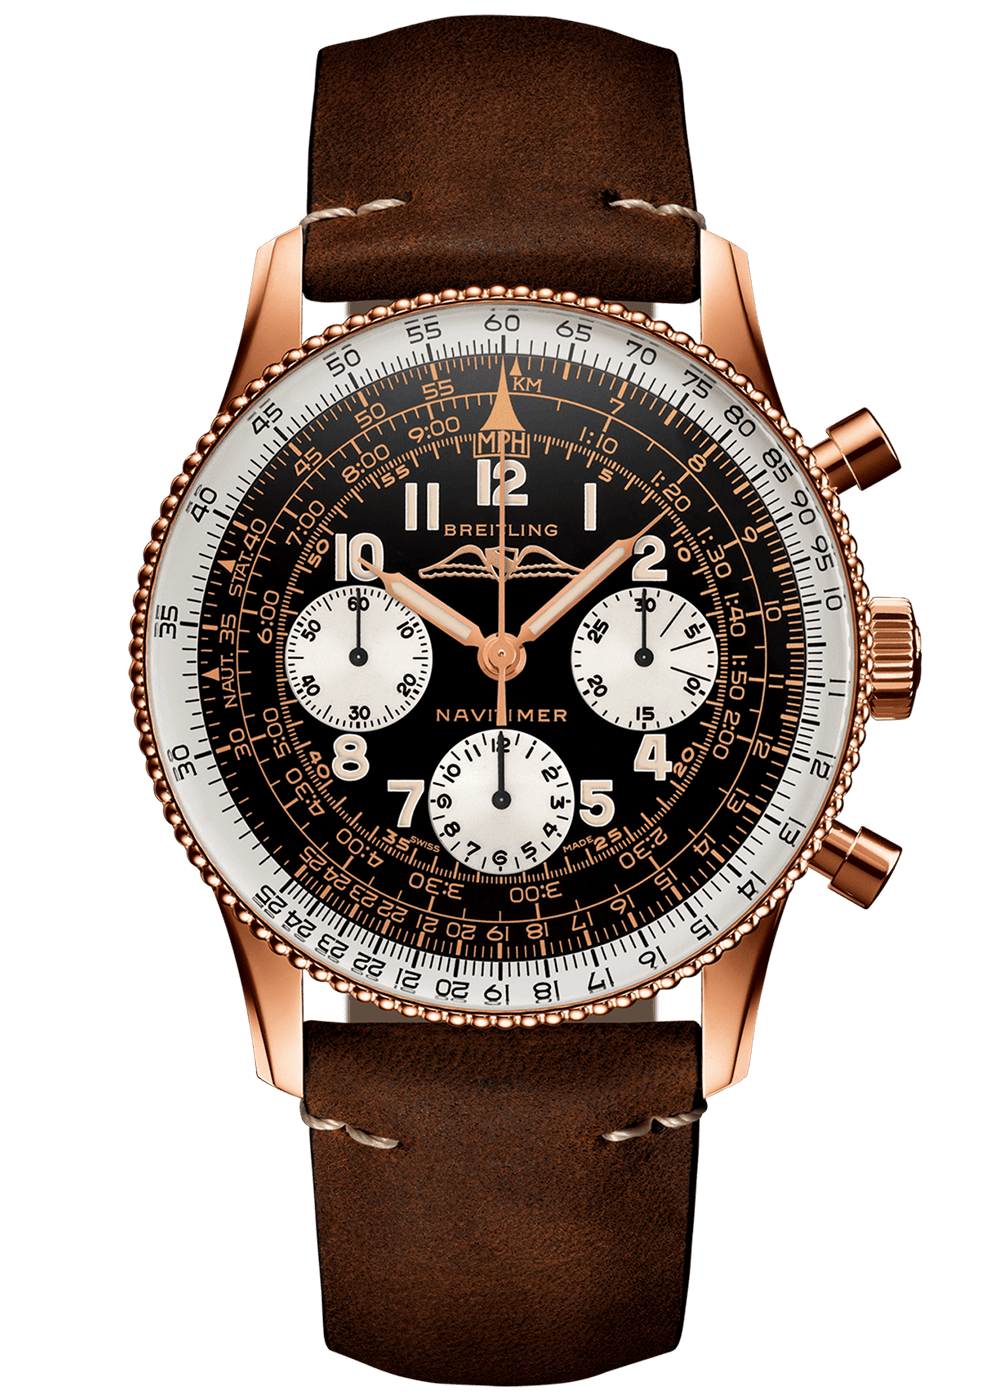 breitling-navitimer-1959-edition-redgold